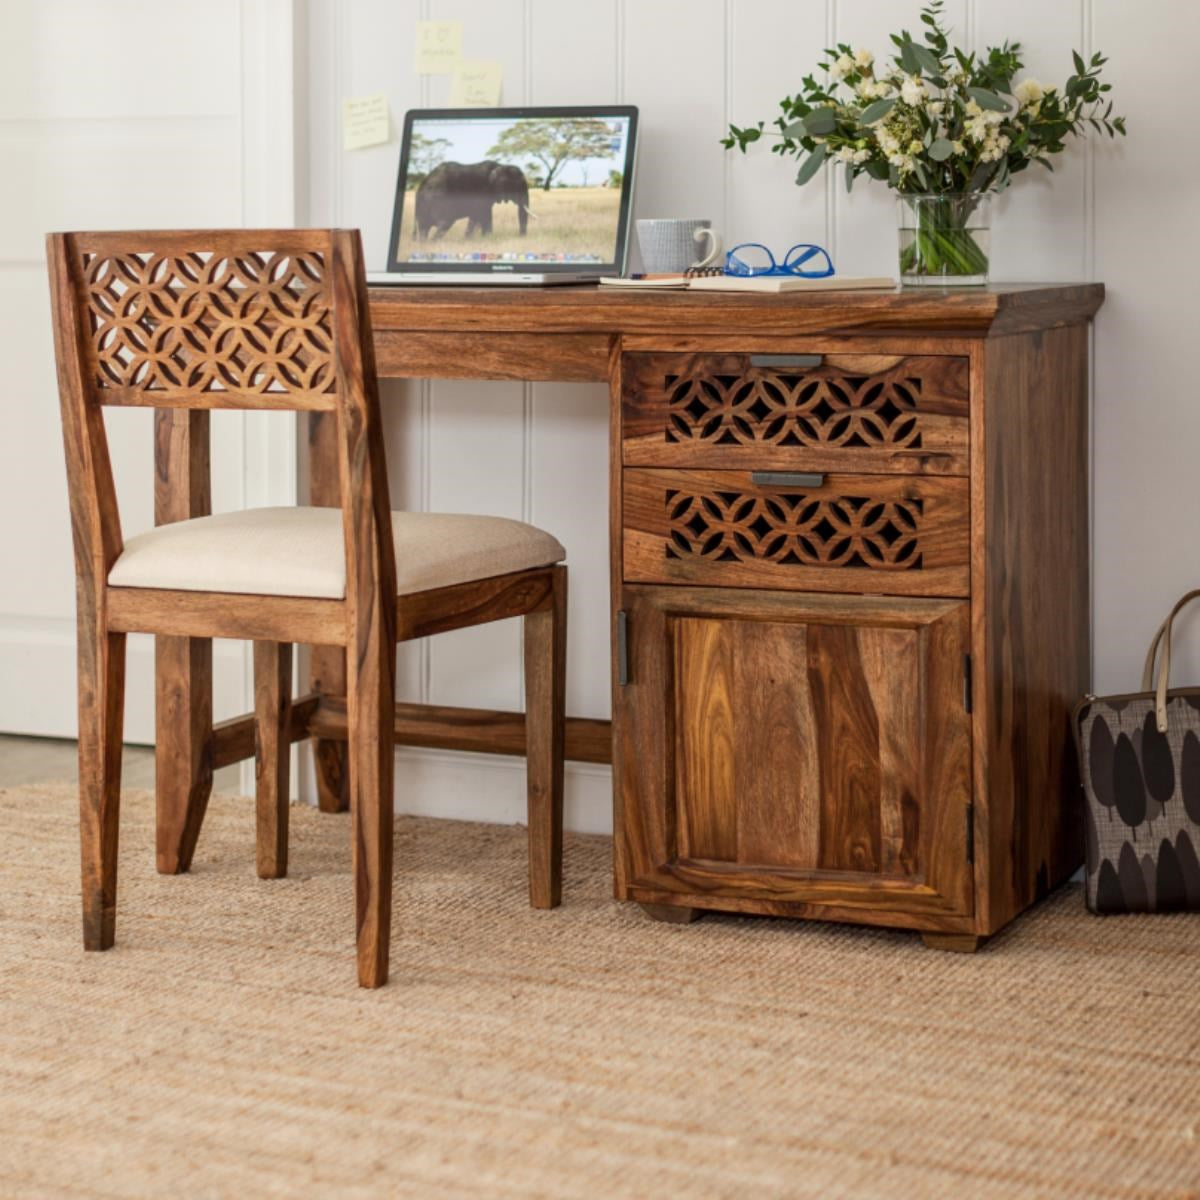 Solid wood study table with chair - lakkadhaara.com